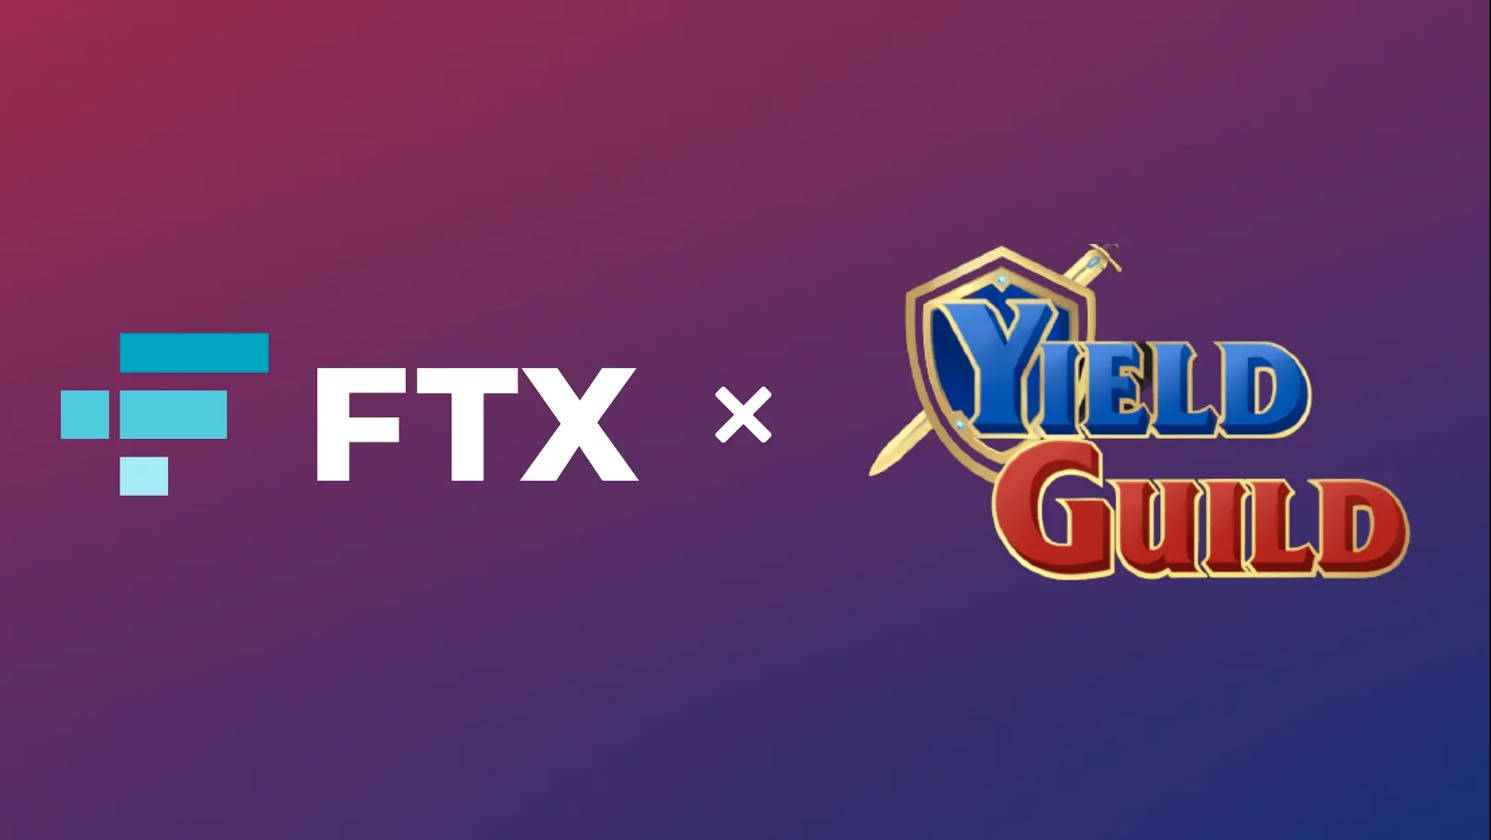 FTX signs a partnership with Yield Guild Games (YGG) for the game Axie  Infinity (AXS)   CoinsMag